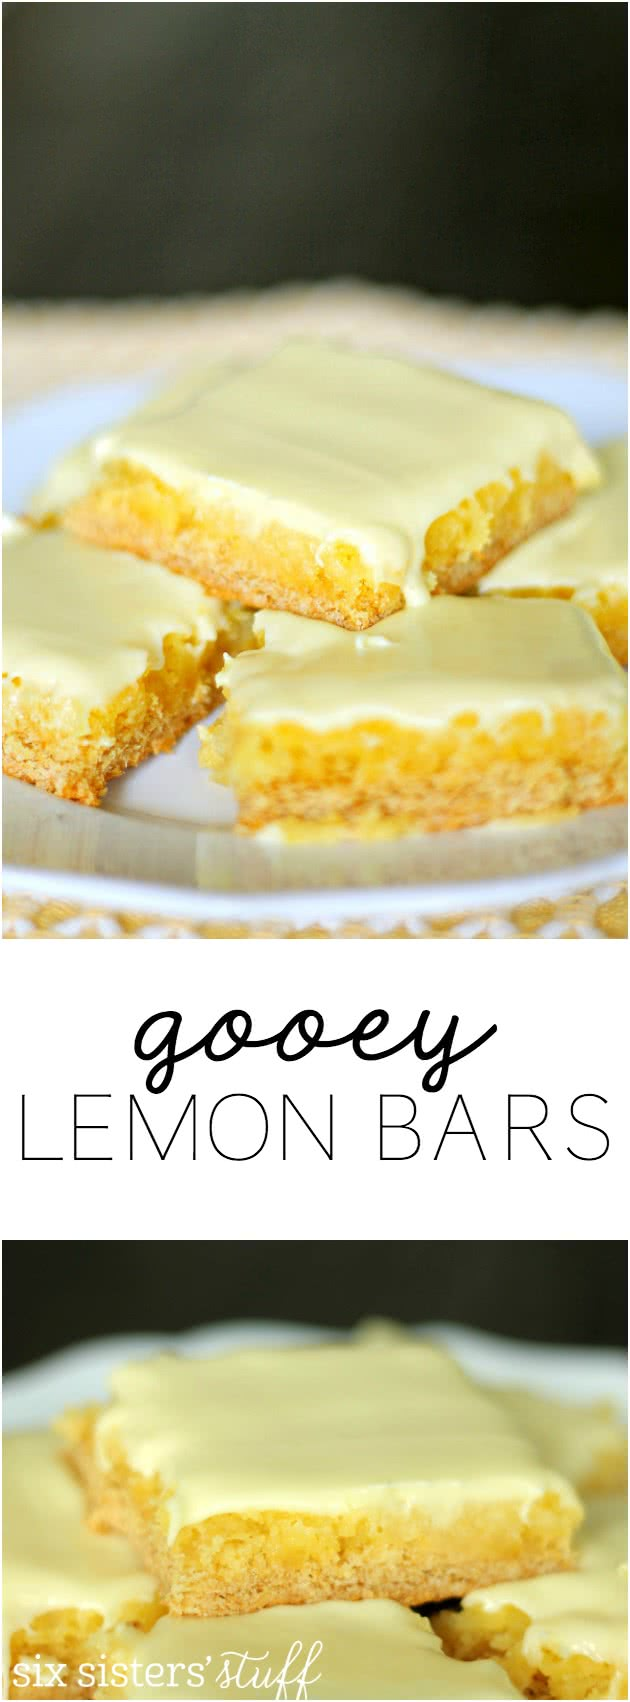 Gooey Lemon Bars from SixSistersStuff.com. These are made with a cake mix and are absolutely amazing!